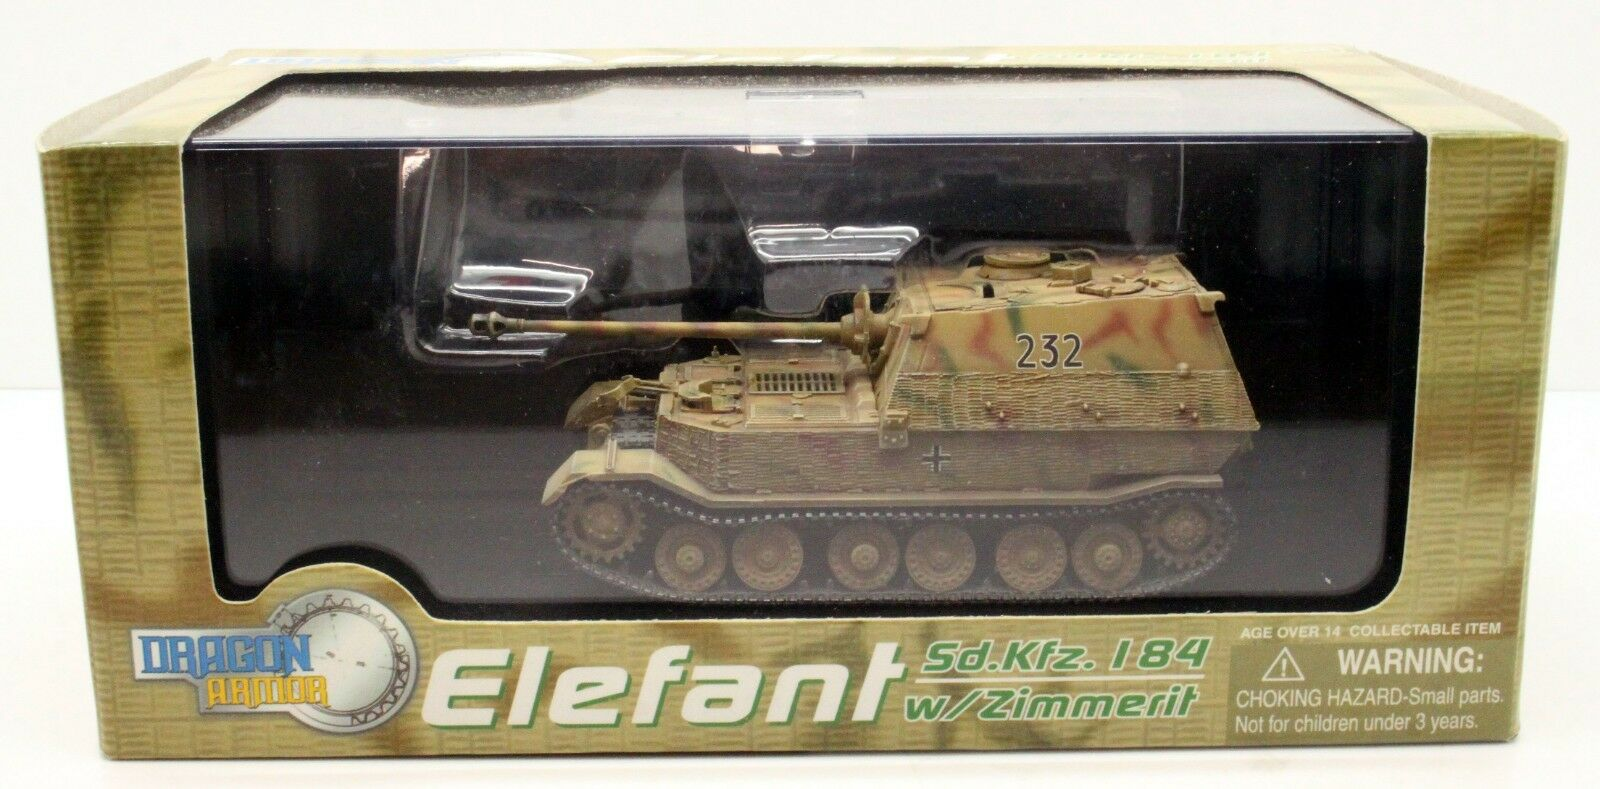 1 72 DRAGON ARMOR 60053 ELEFANT SD.KFZ.184 RUSSIA   POLAND 1944 (D29)